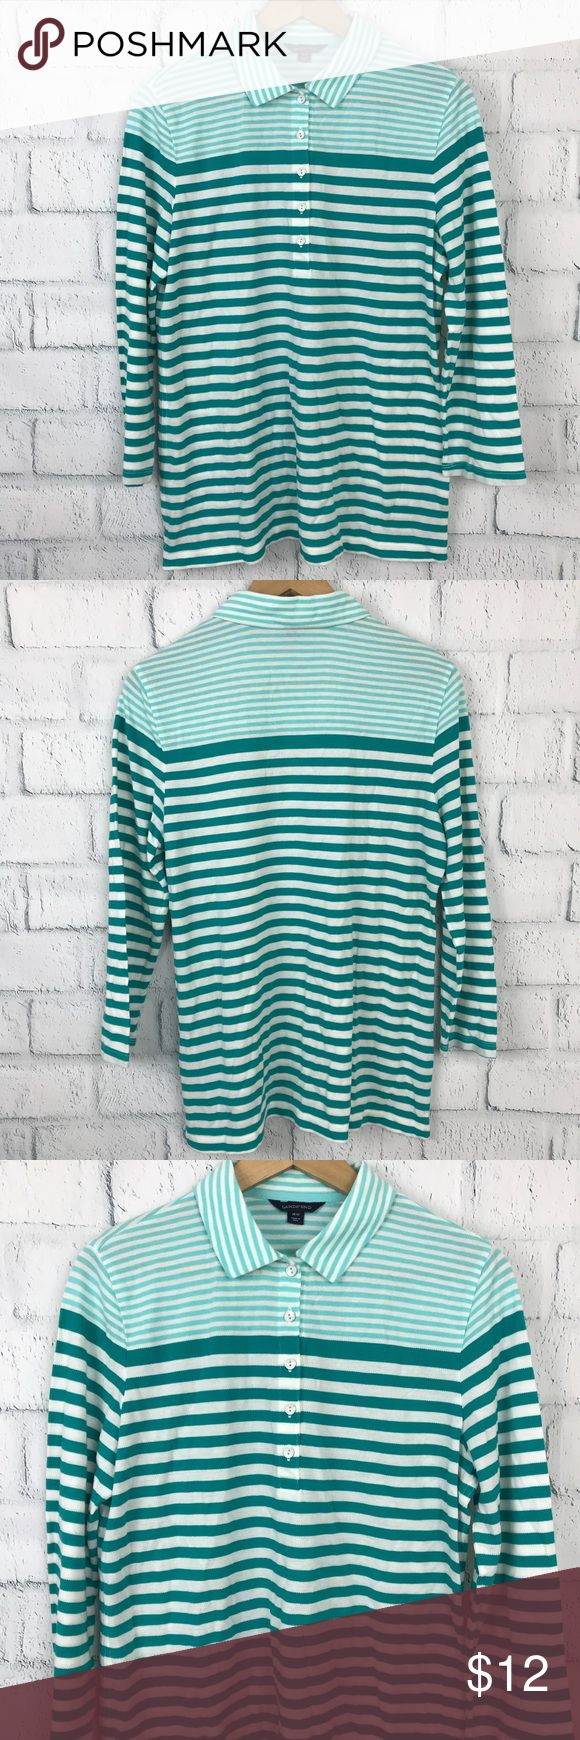 Lands End Women's Green Striped Button Tunic M ▪️Excellent used condition ▫️ Women Sz M ▪️ smoke free - Dog friendly home ▫️Armpit to Armpit 21 inch. ▪️Top to Bottom 24 inch. ▫️ Sleeve length 20 inch. ▪️ 67% Lyocell 33% Baumwolle  🔮 Check out more style and size in my closet.  ✔️Shipping 1 business day or Same day if payment by 12pm Eastern time zone  ✔️ Measurement are to the best of my knowledge by flat lay position. Every items from my store come from Michigan with Pre-owe / New with Tag…